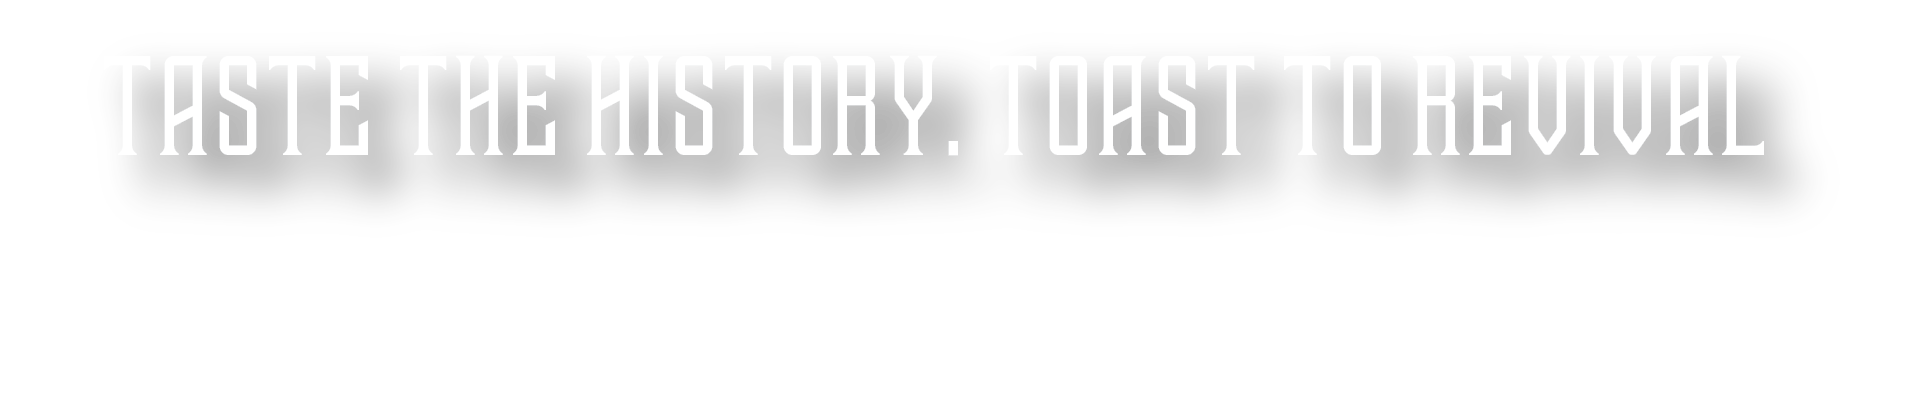 taste and toast text only.png